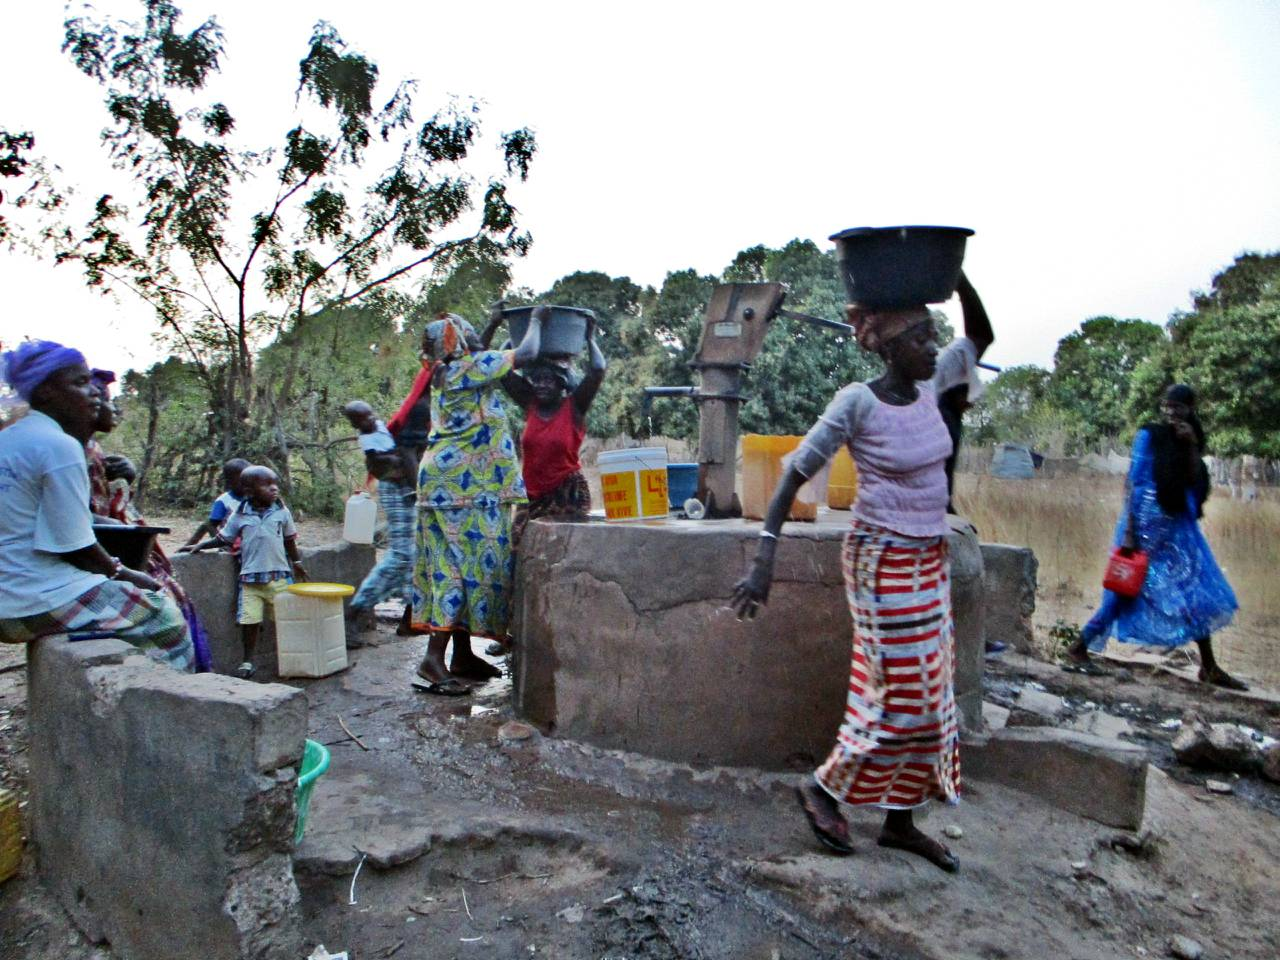 Kiang Central Water System Project - The Gambia